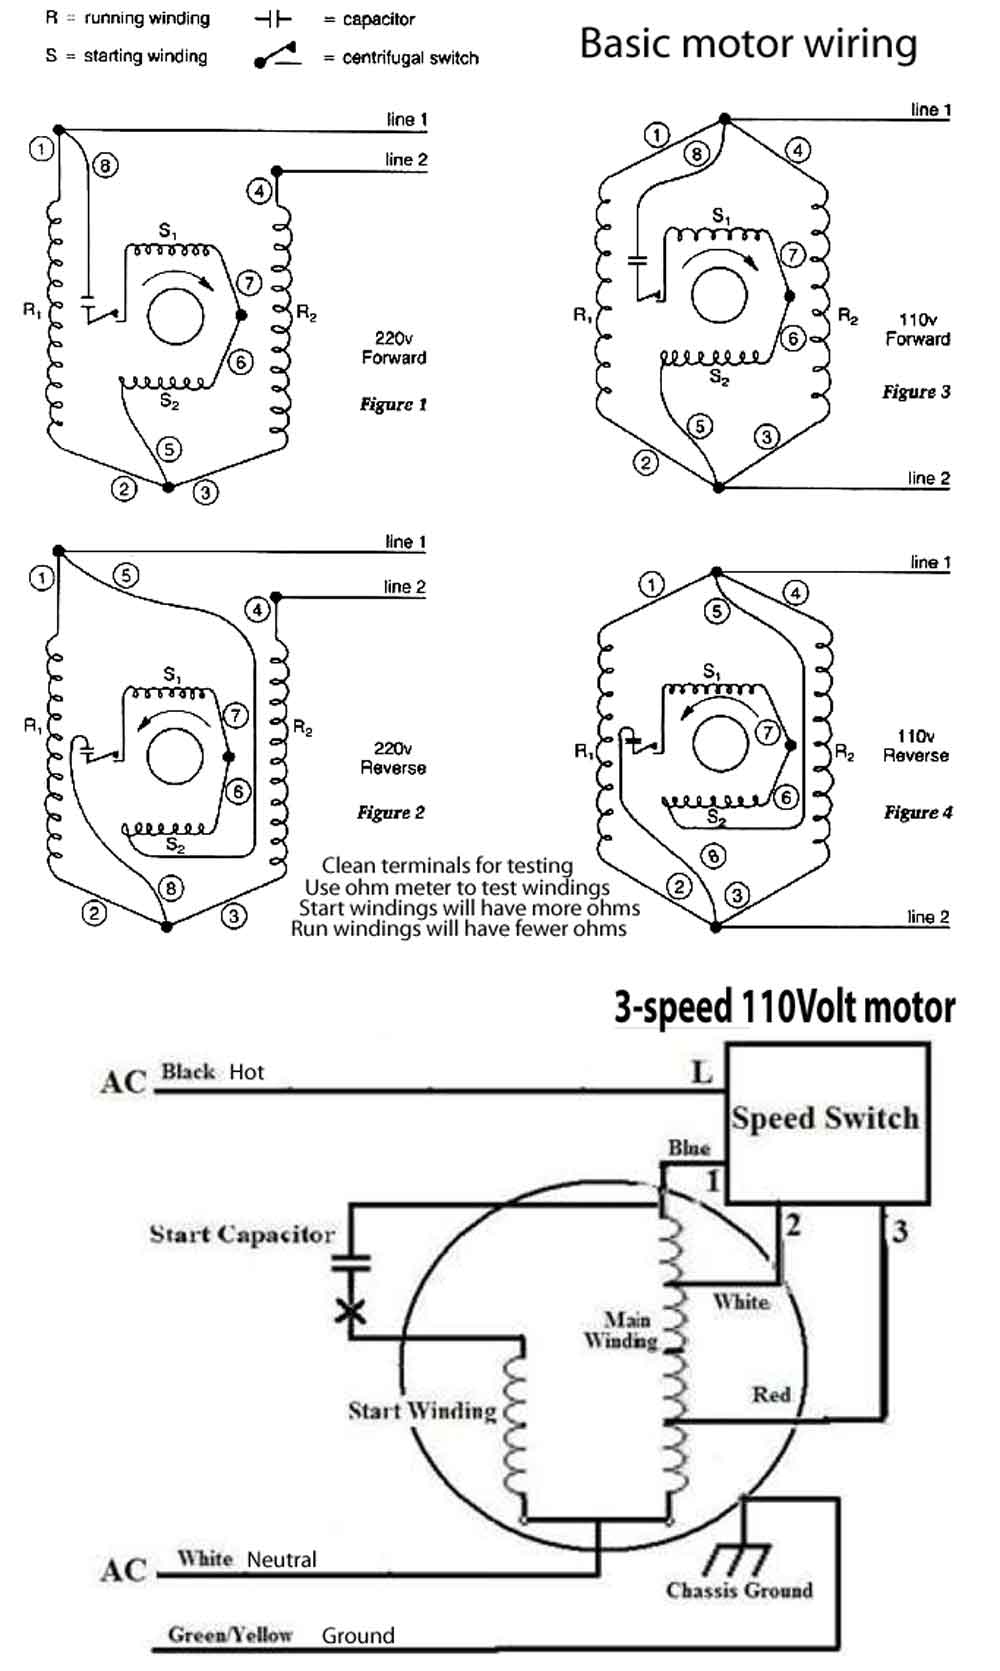 Motor wiring 500 how to wire 3 speed fan switch pedestal fan motor wiring diagram at fashall.co